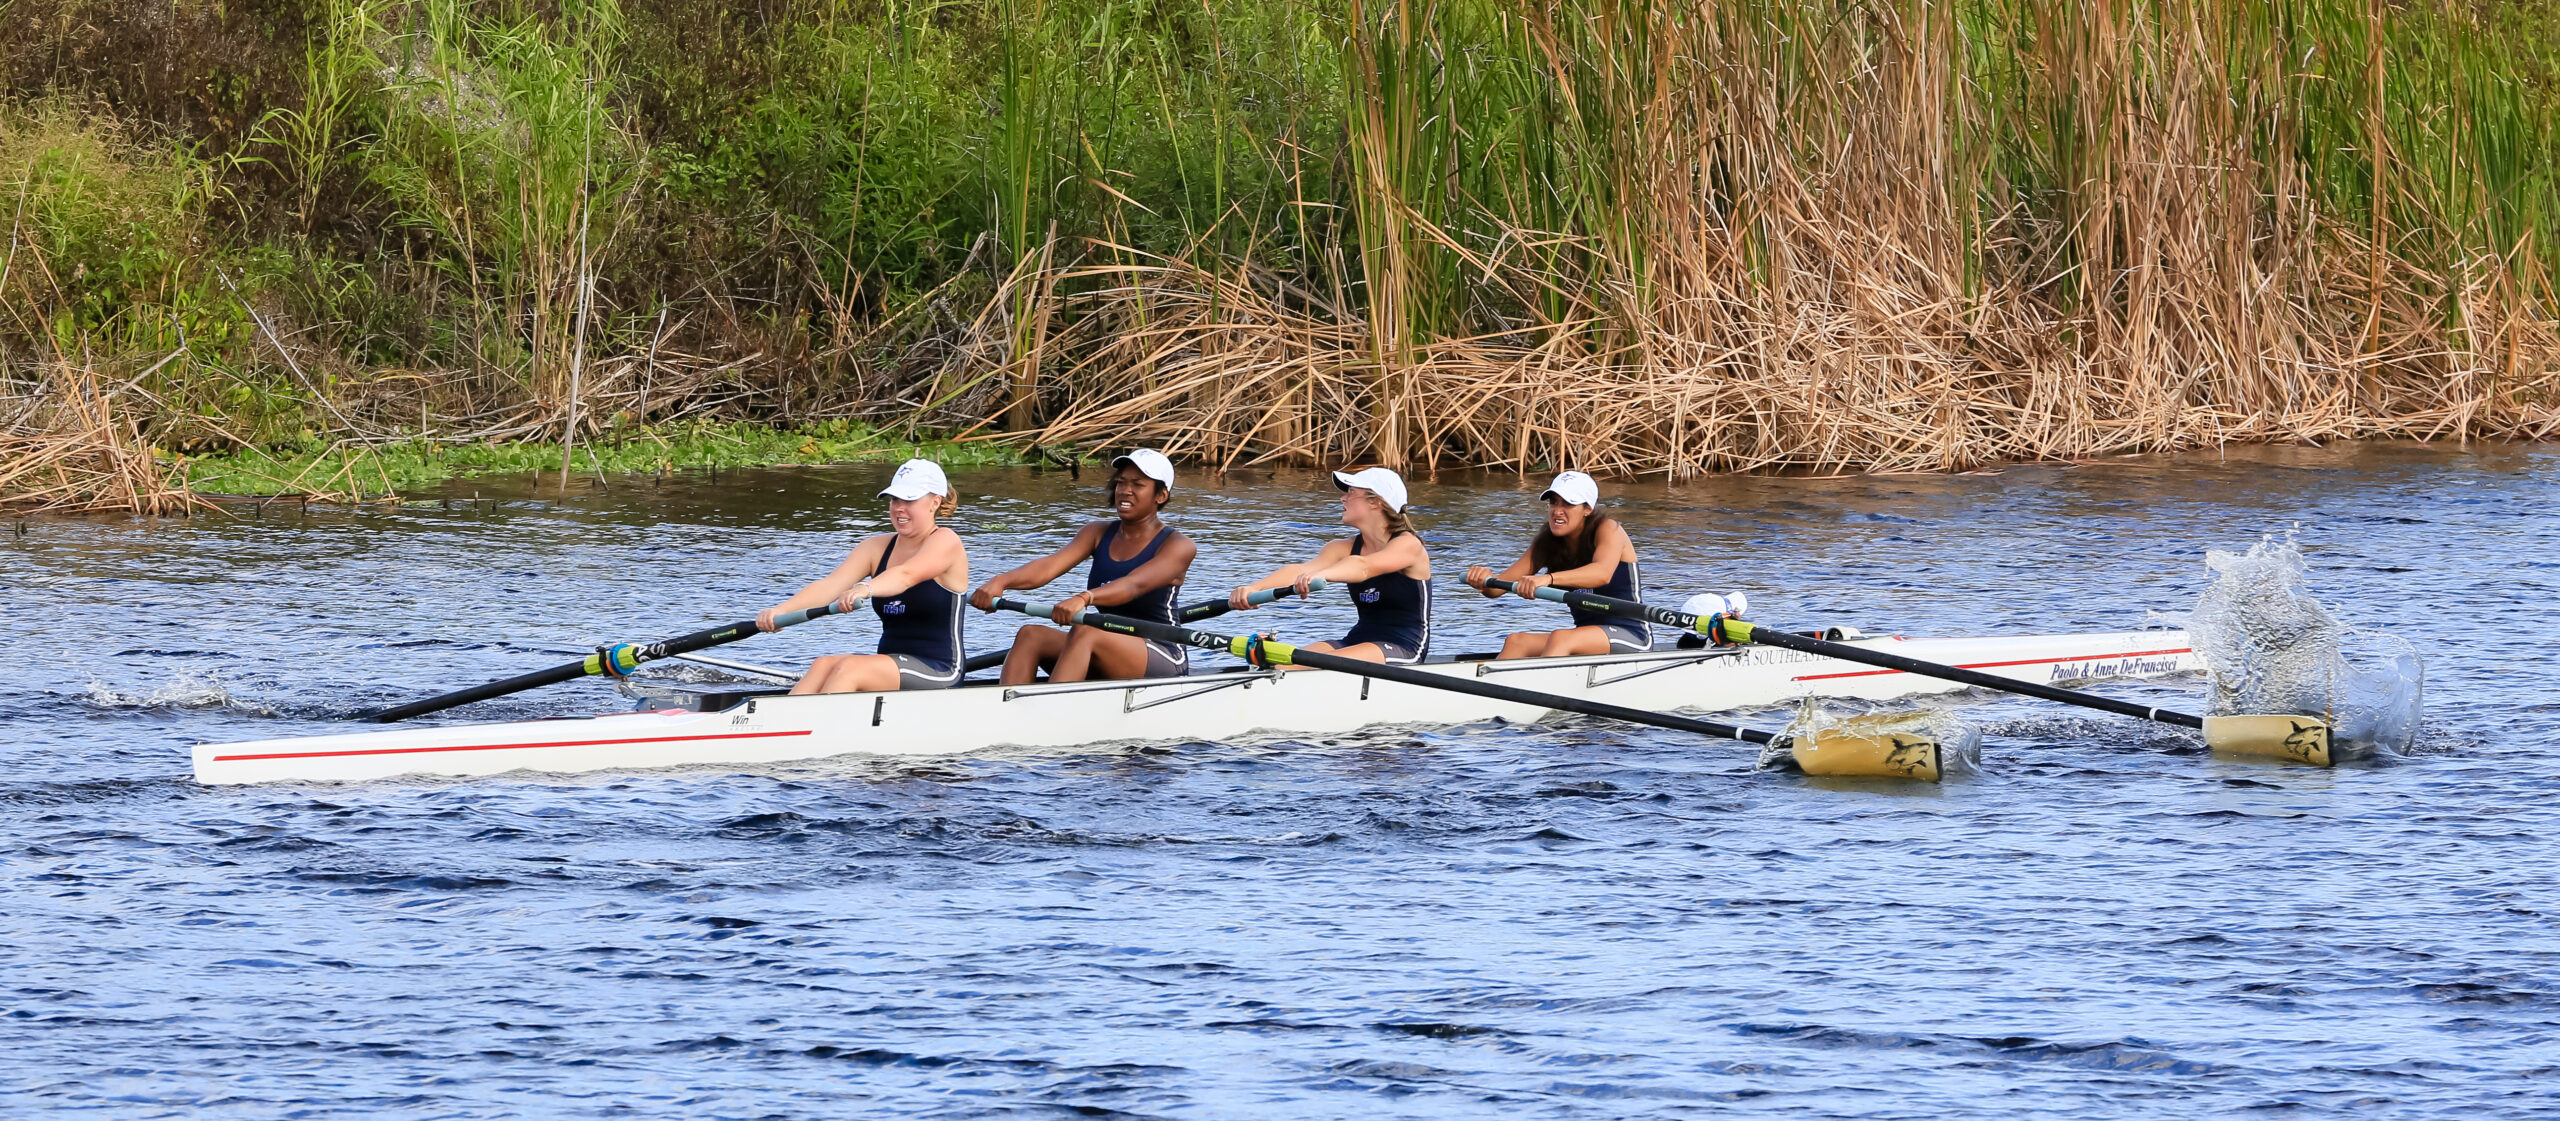 Collegiate rowing competition on Nov 11, 2013 in Fellsmere, Florida. Photo credit: Leonard Jerry Horsford / ShutterStock.com, licensed.